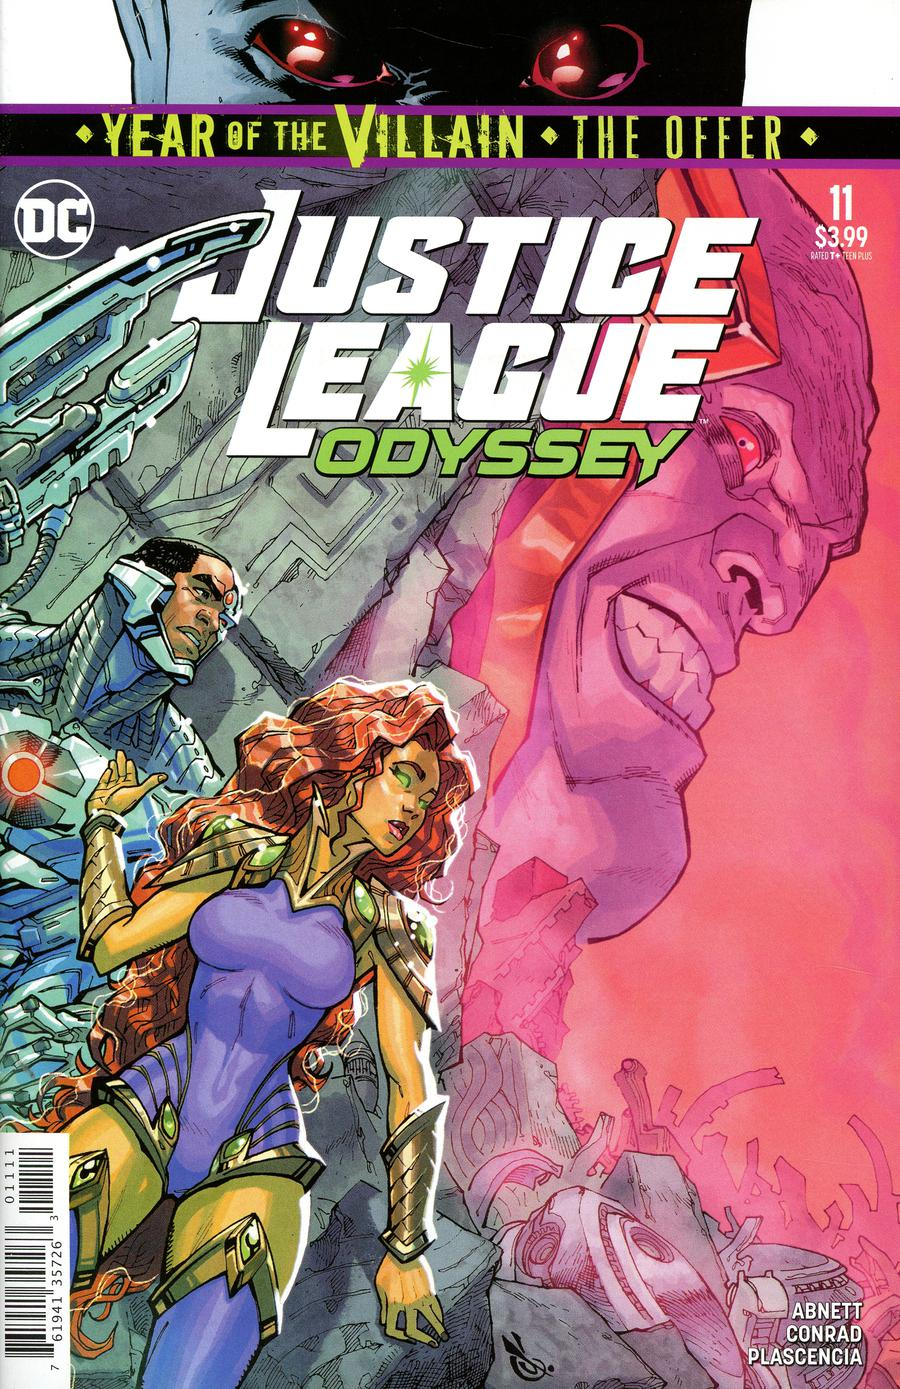 Justice League Odyssey #11 Cover A Regular Carlos DAnda Cover (Year Of The Villain The Offer Tie-In)